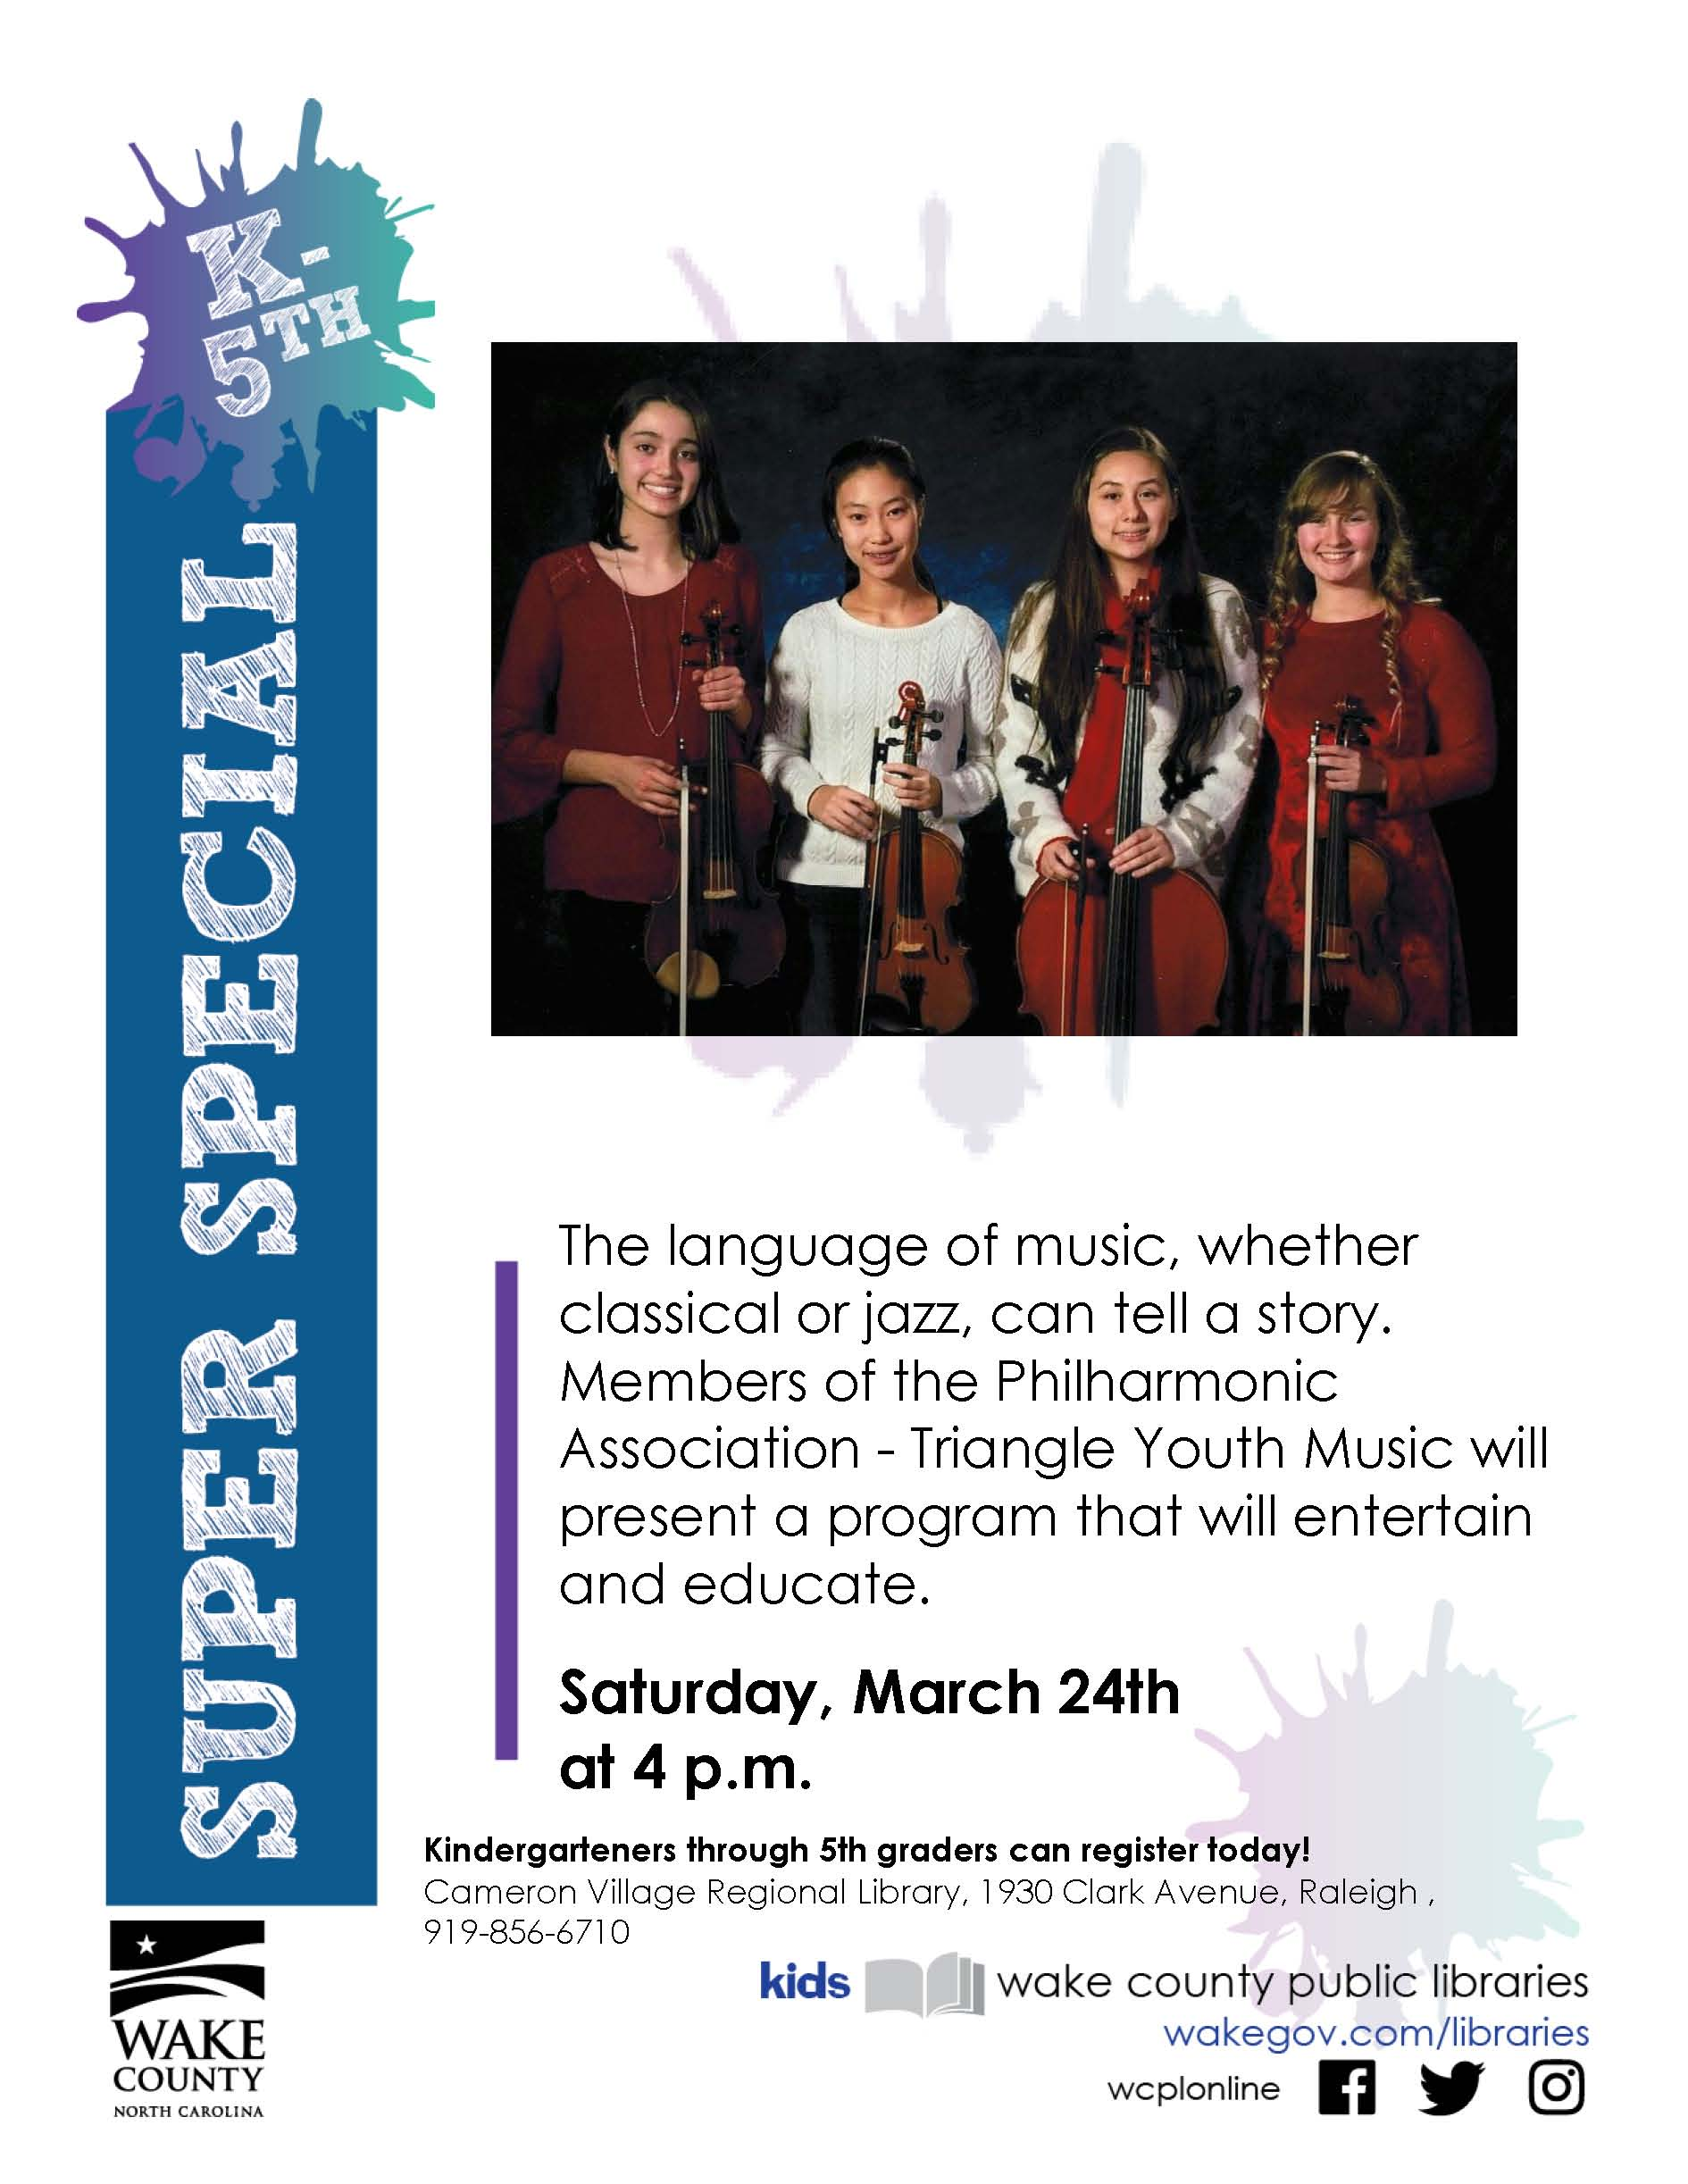 A flyer for string quartet concert Saturday march twenty-fourth at 4 PM. Cameron Village Regional library, 1930 clark avenue, raleigh.